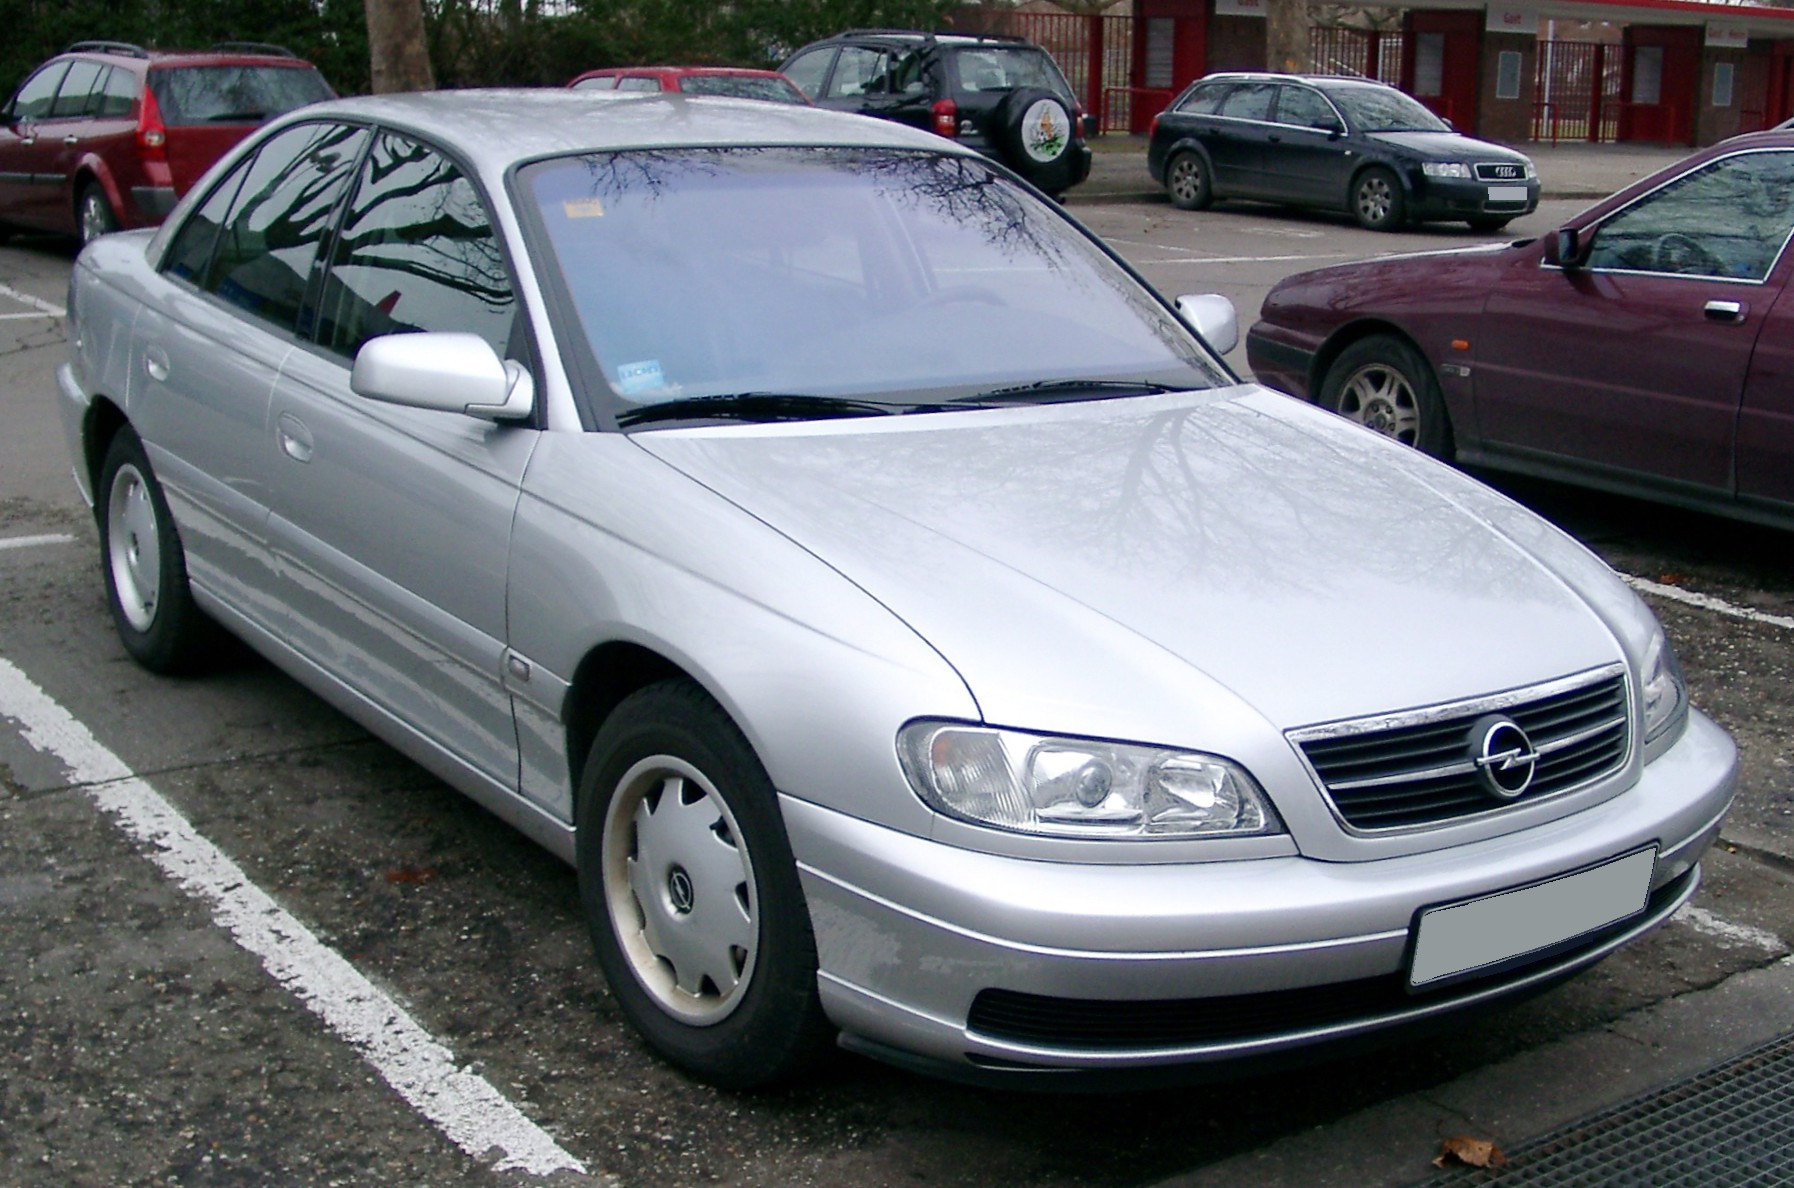 2001 Opel Omega b - pictures, information and specs - Auto